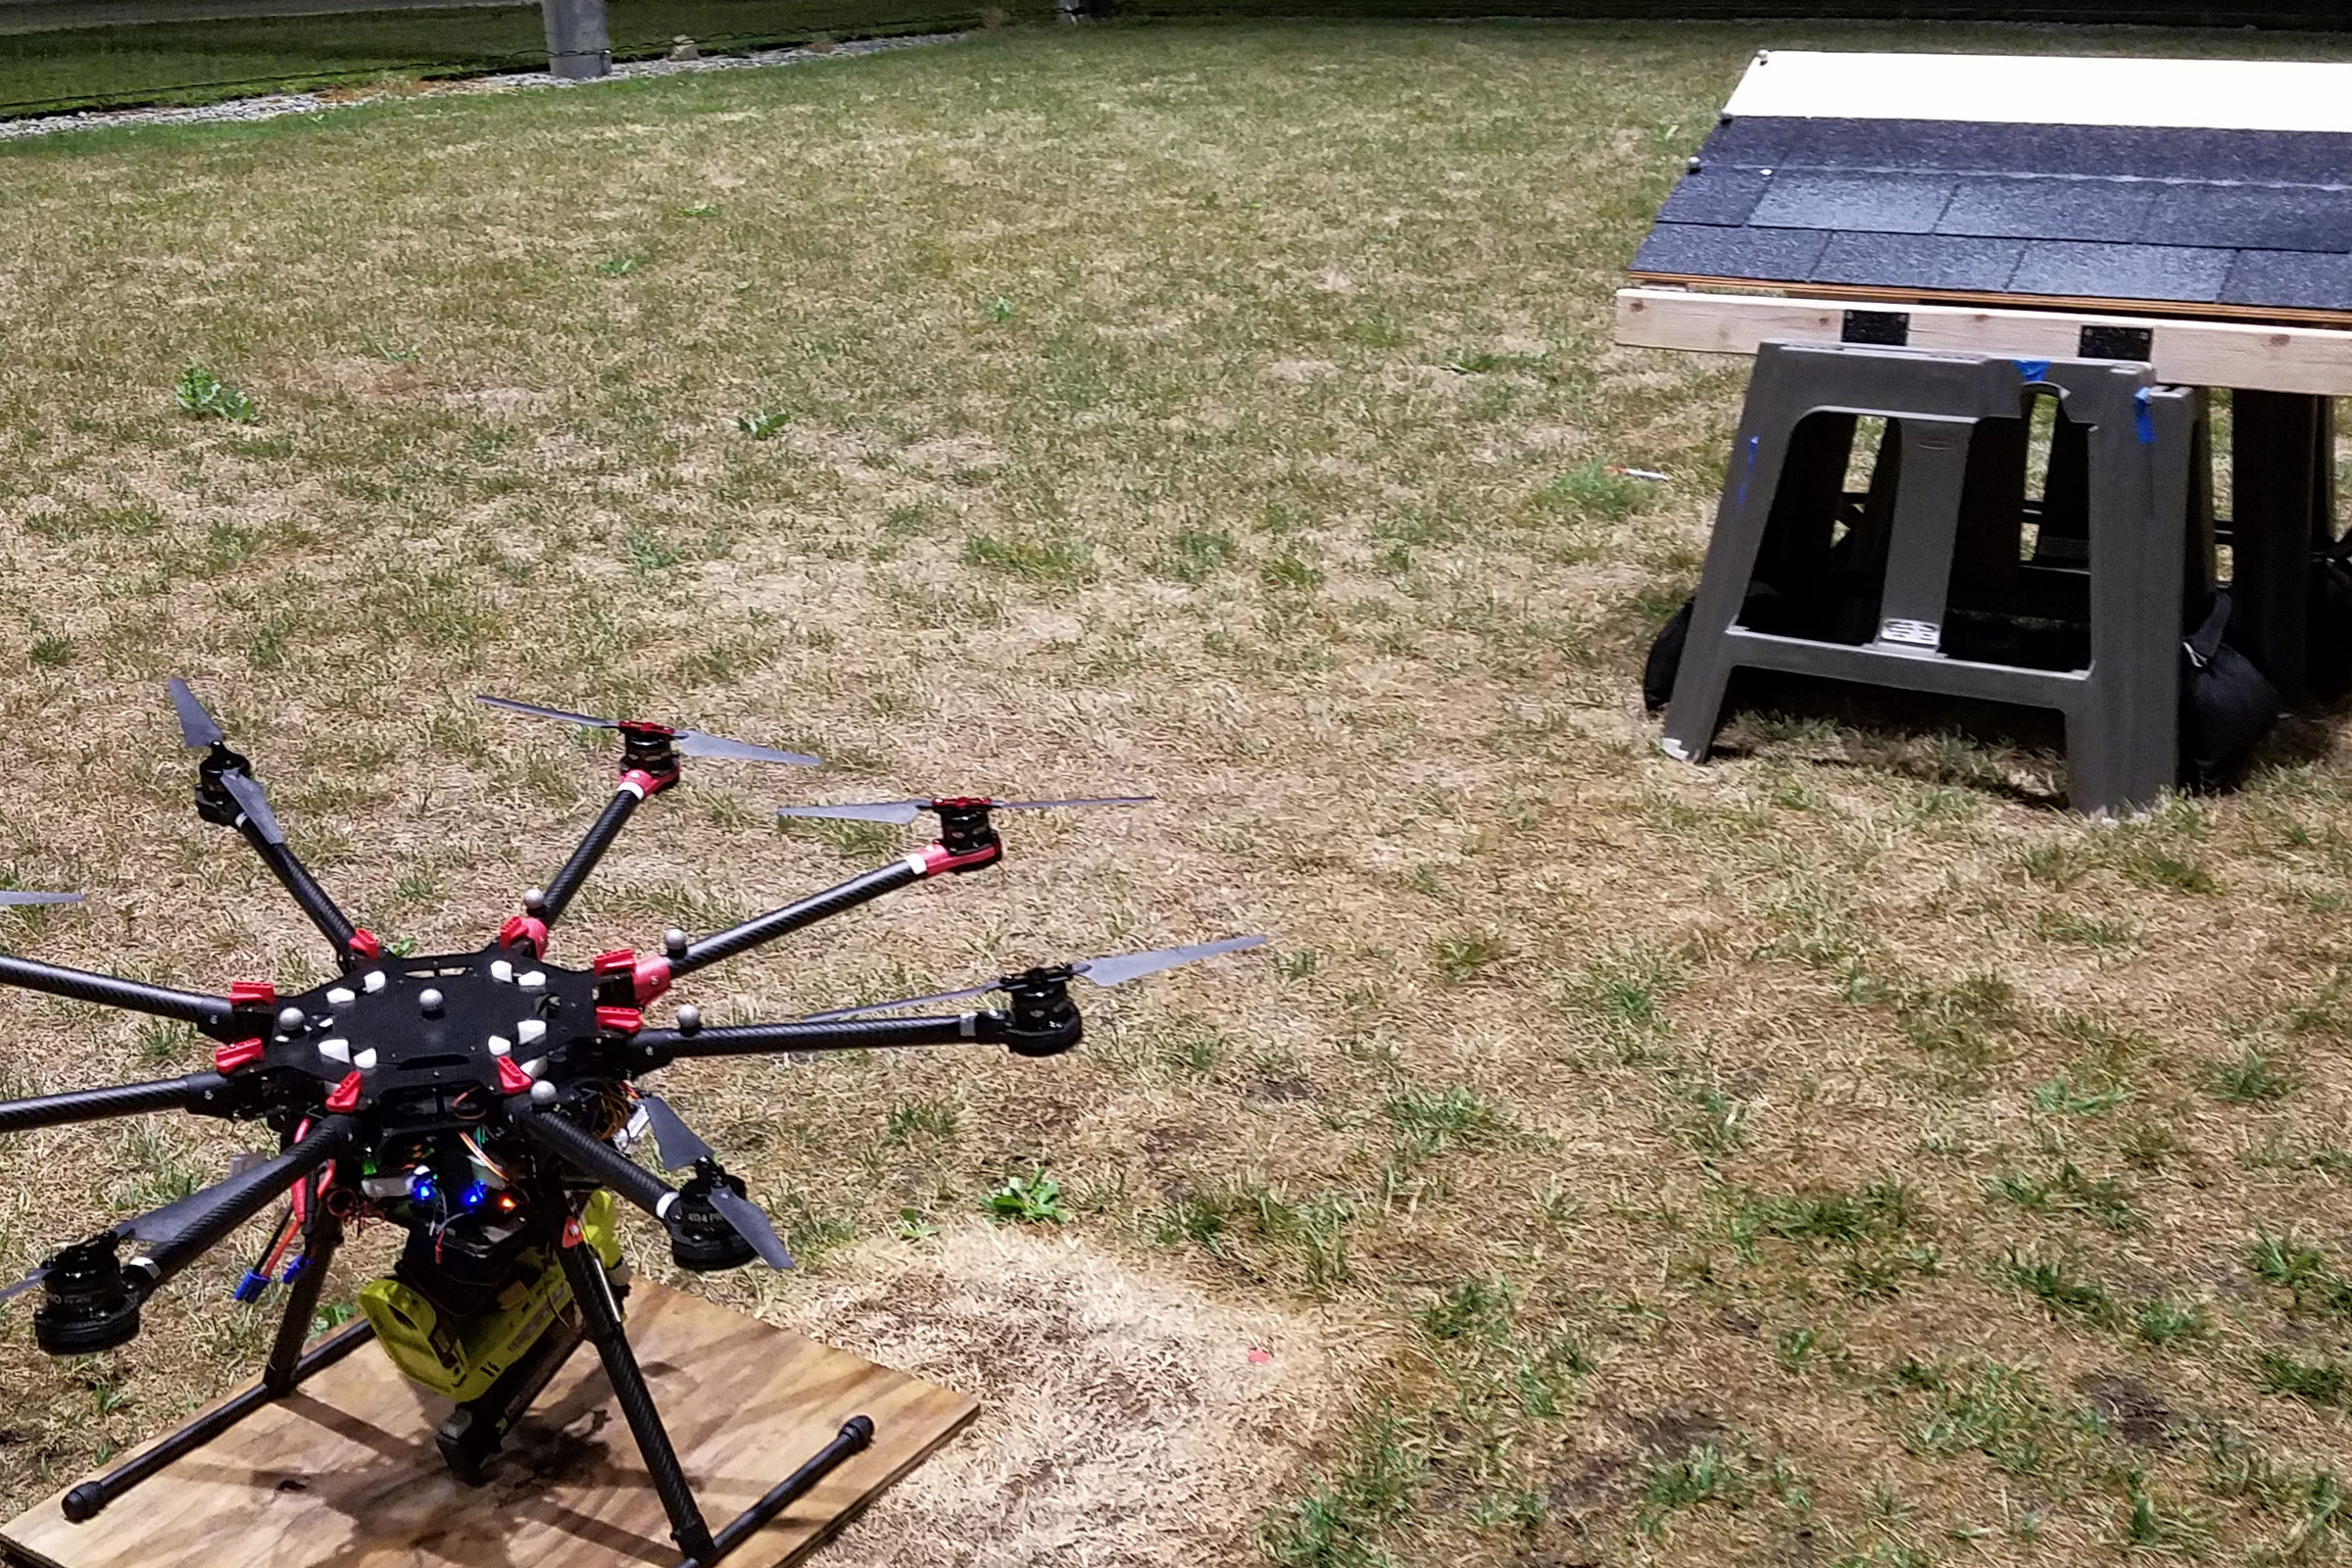 A nail gun attached to an octocopter. Credit: Matthew Romano, Michigan Robotics, University of Michigan.